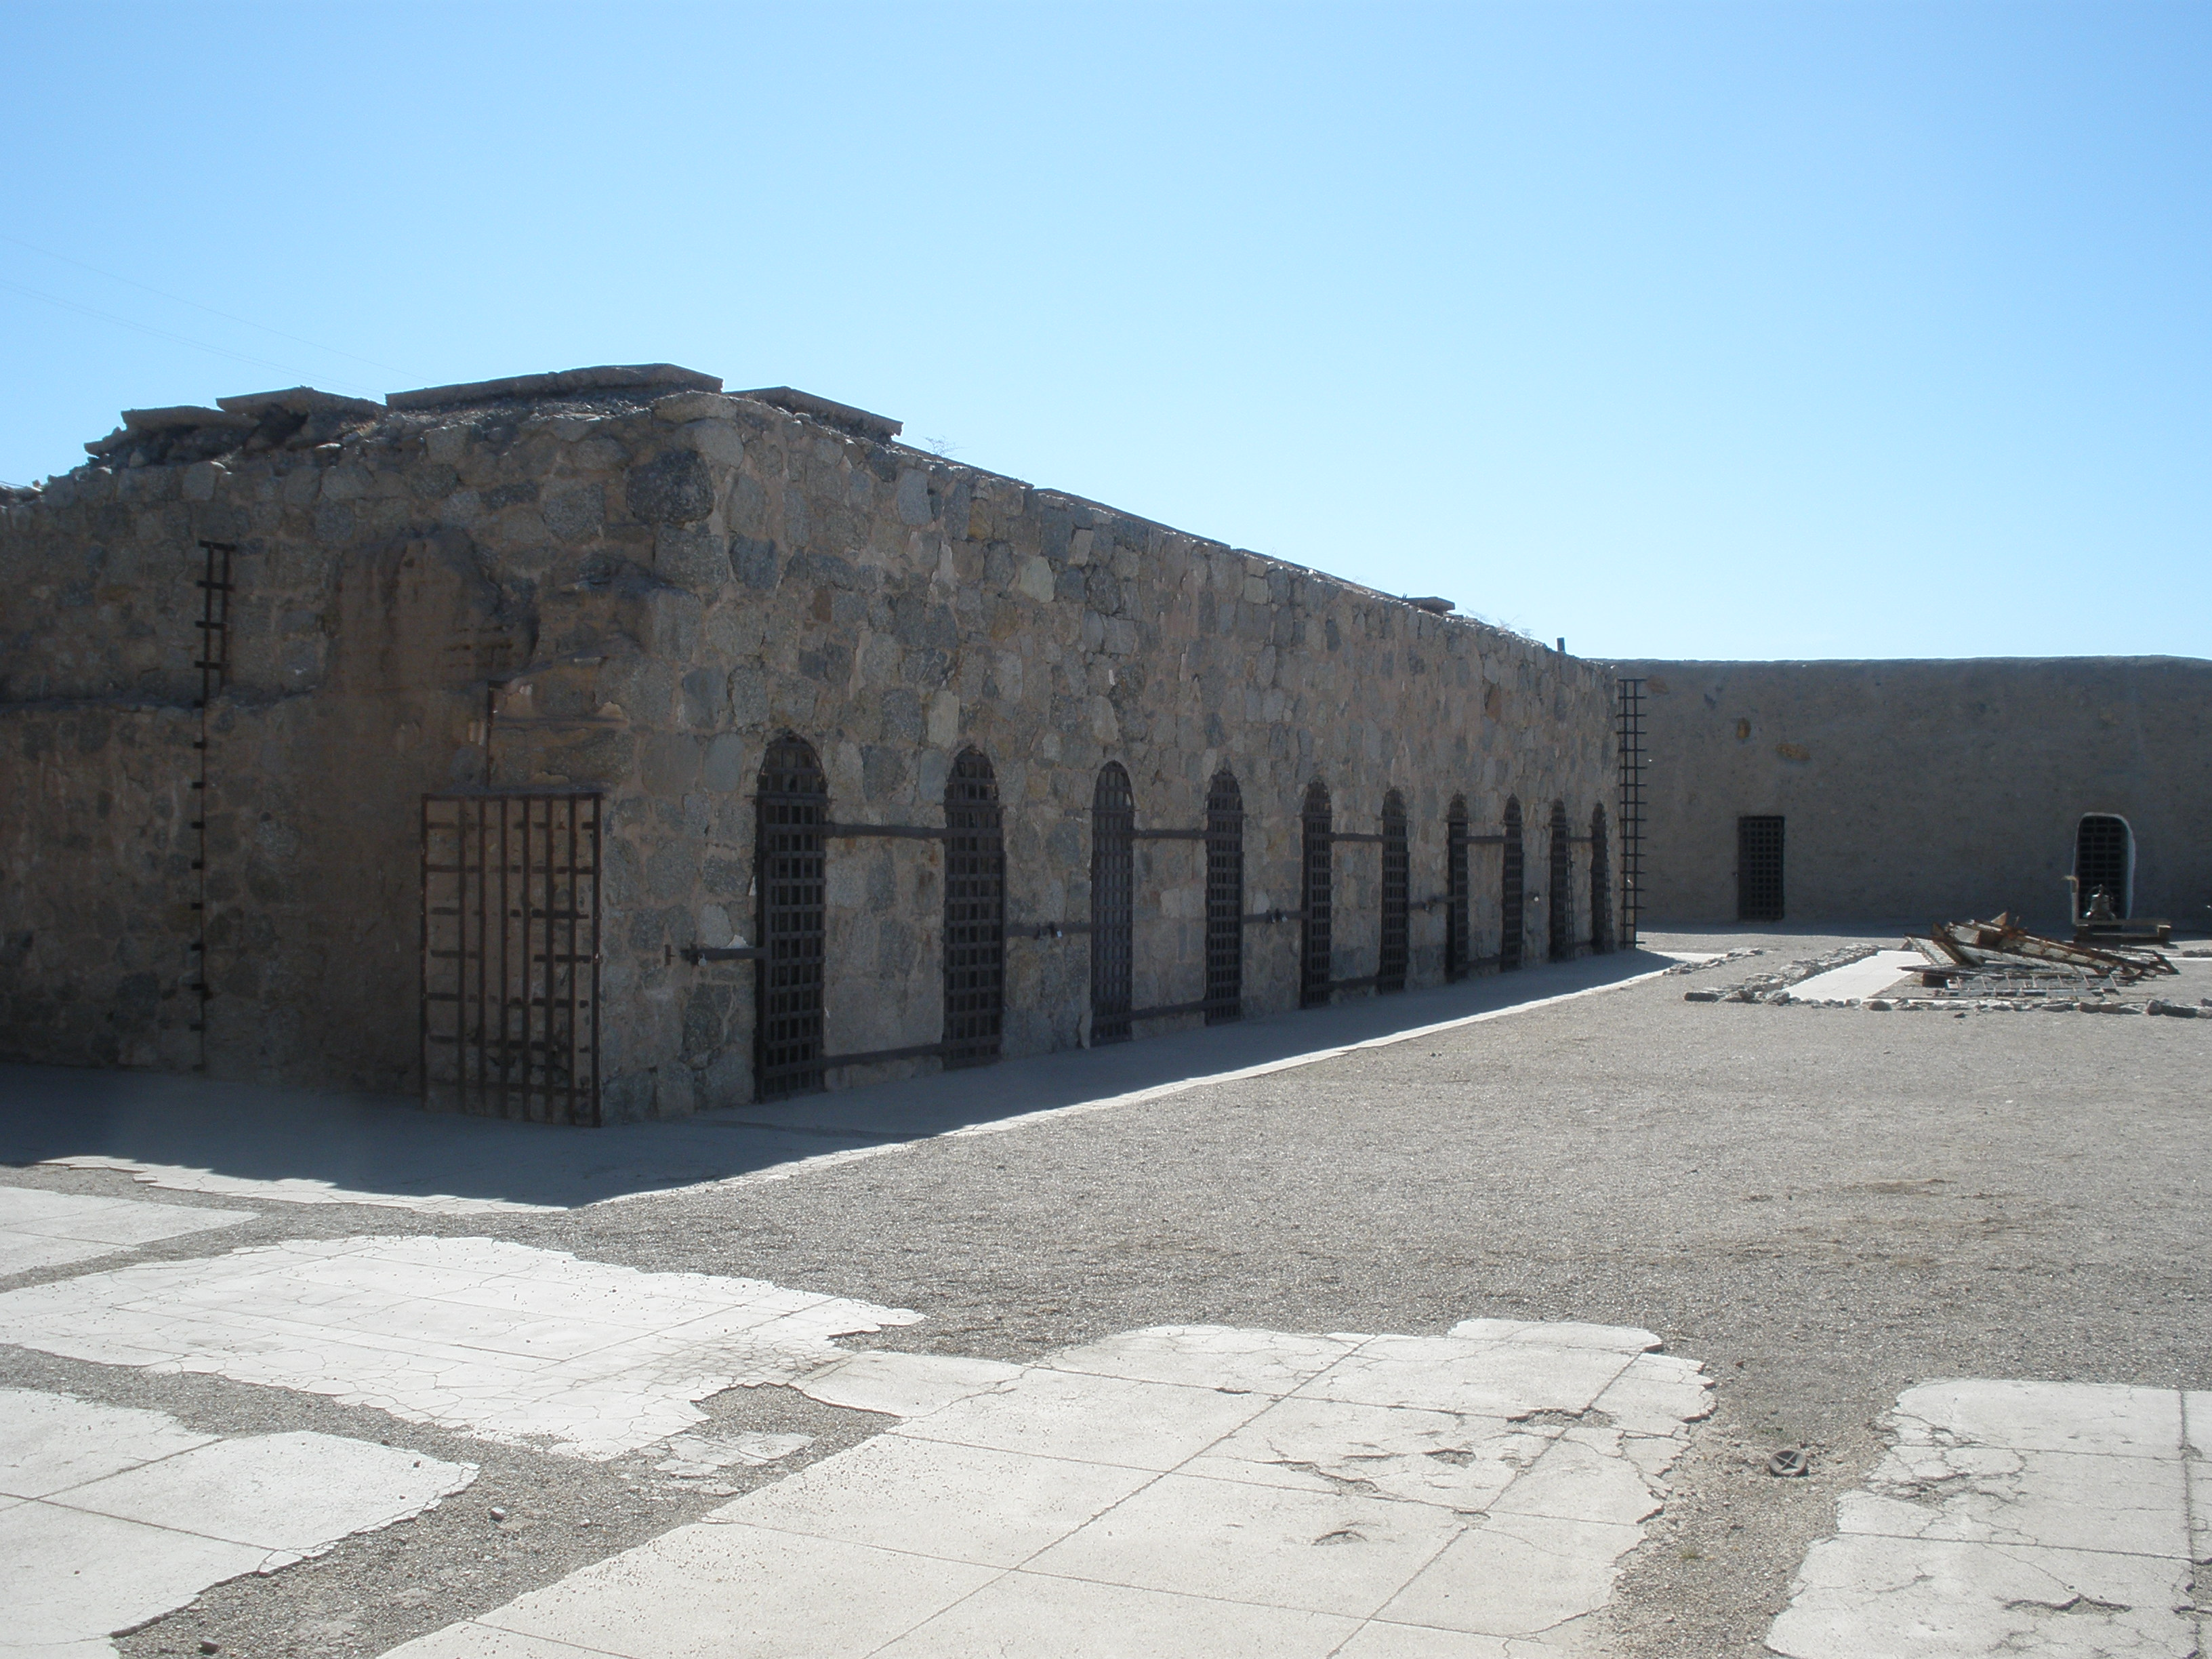 yuma territorial prison Official site for yuma territorial prison state historic park, an arizona state park.